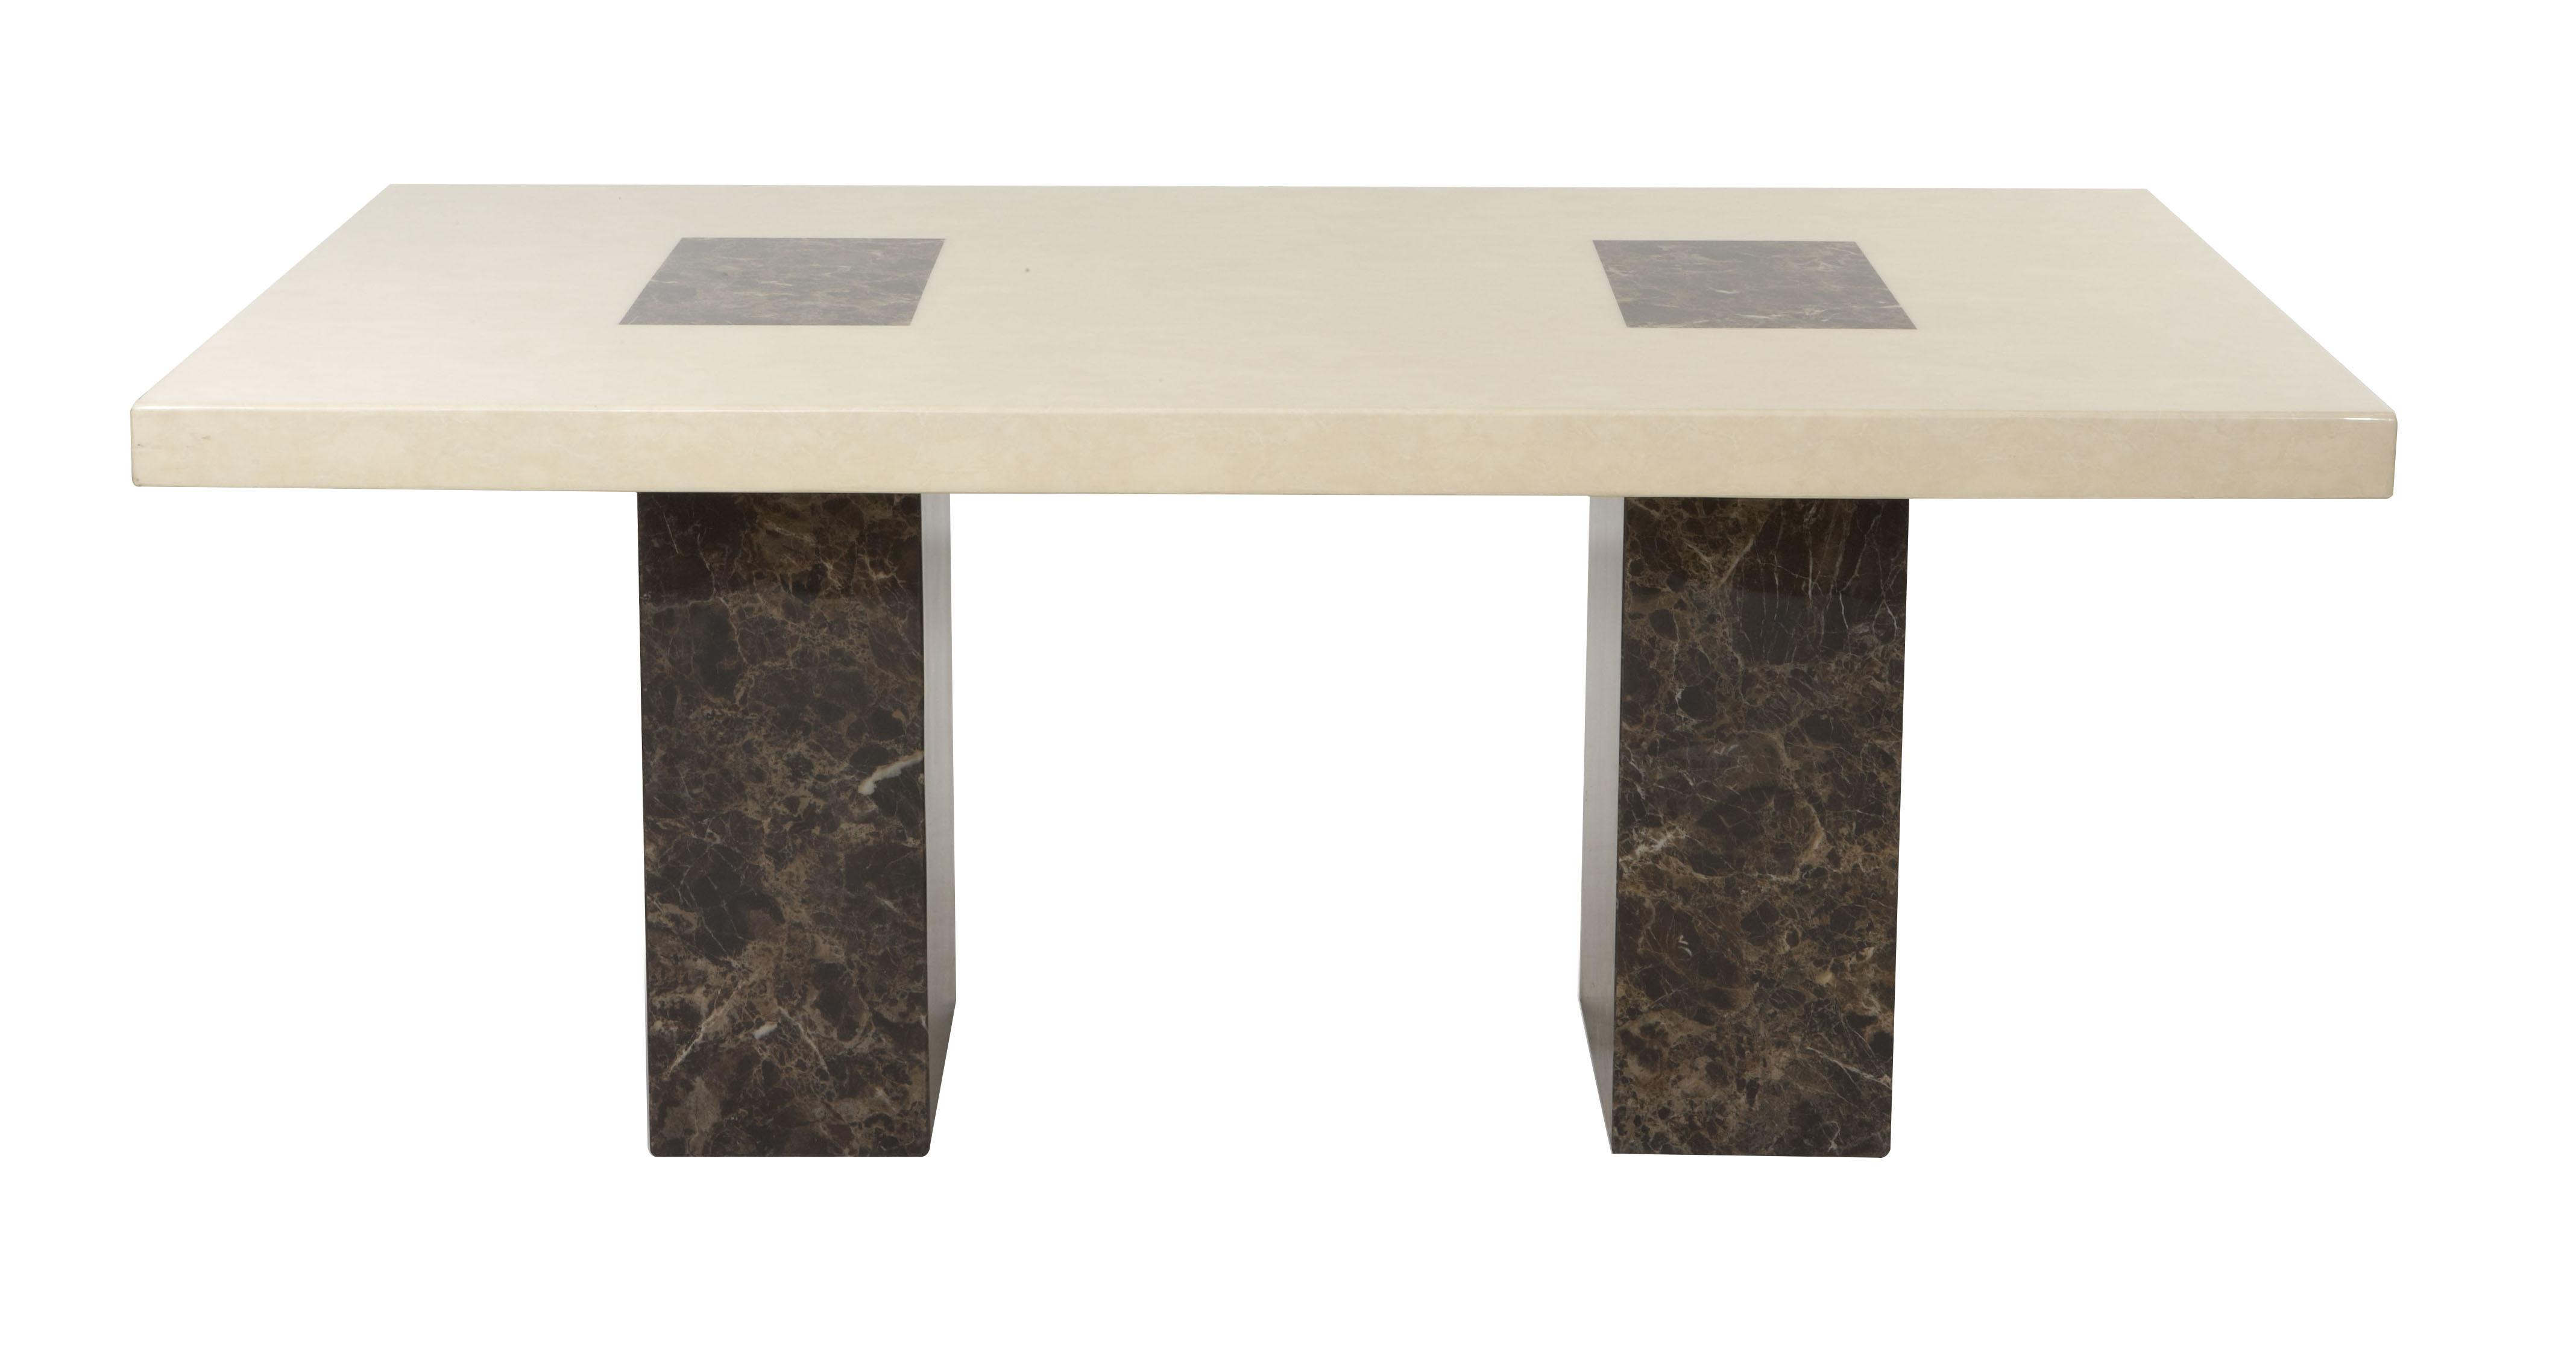 Strasbourg Rectangular Table Strasbourg Marble DFS : strasbourgtbstrasbourgmarblecreamanddarkmarbleview1 from www.dfs.co.uk size 4273 x 2268 jpeg 241kB